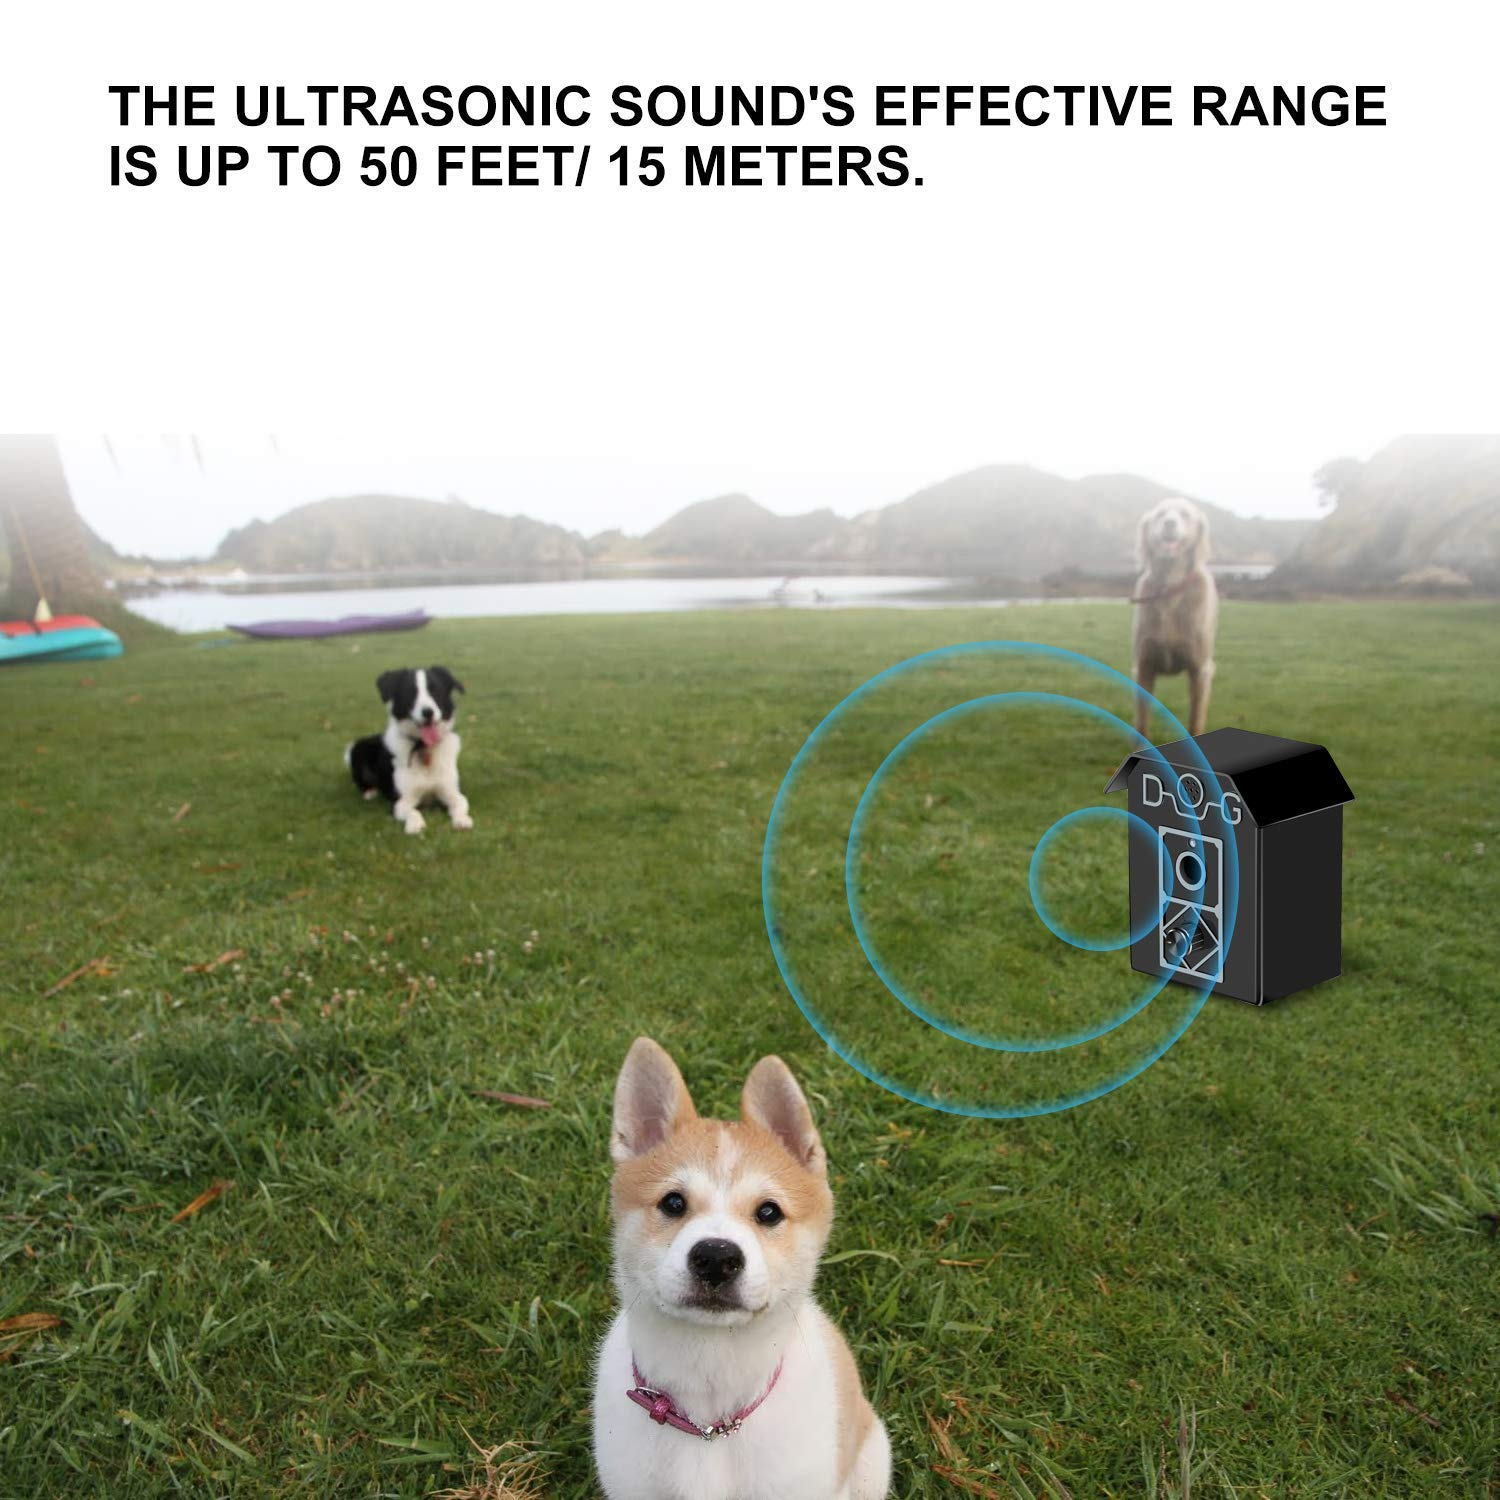 Dog Bark Control 50 FT Range Stop Barking Device, Ultrasonic Anti-Bark Device, Safe for All Dogs, Indoor & Outdoor Use, Dog Training Tool and Sonic Bark Deterrents Device Let Stop Barking Dogs